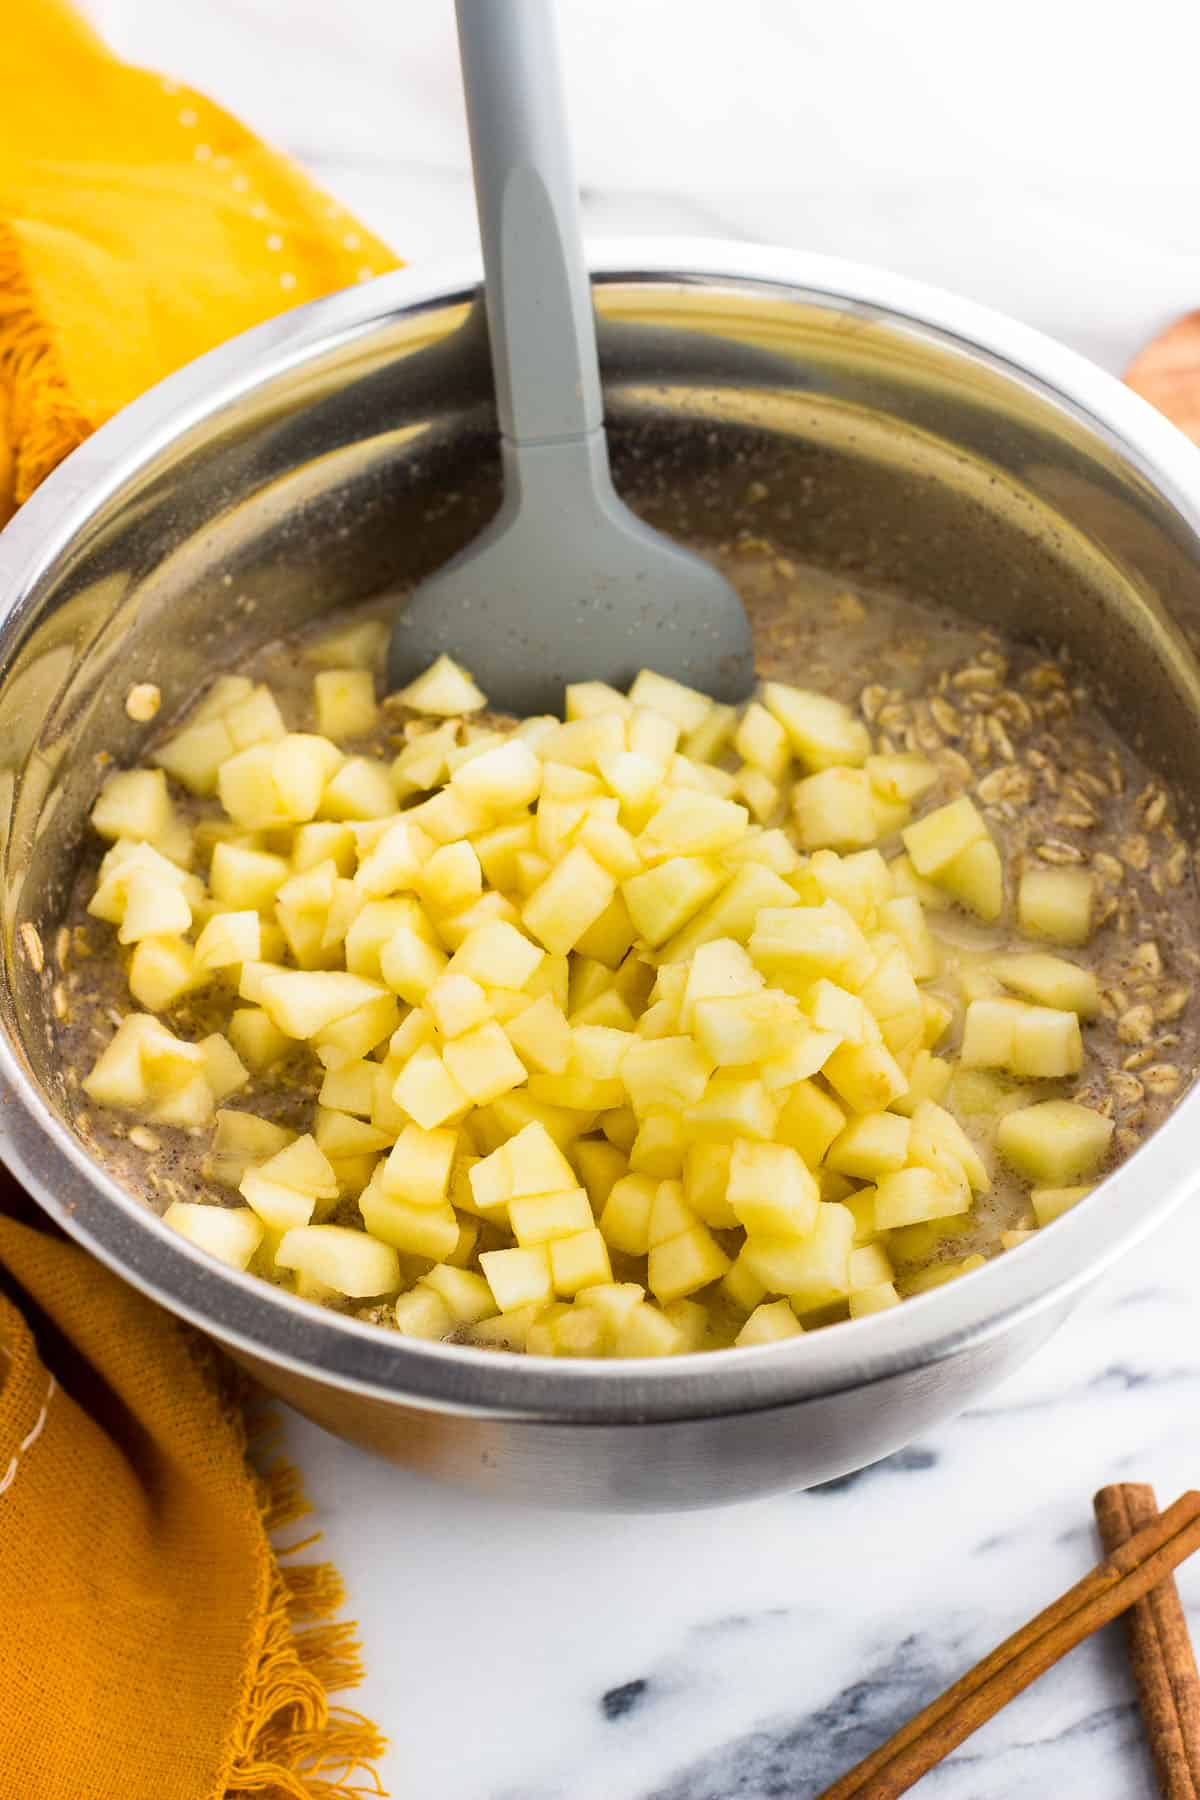 The baked oatmeal mixture in a metal mixing bowl with a spatula with the chopped apples poured on top.